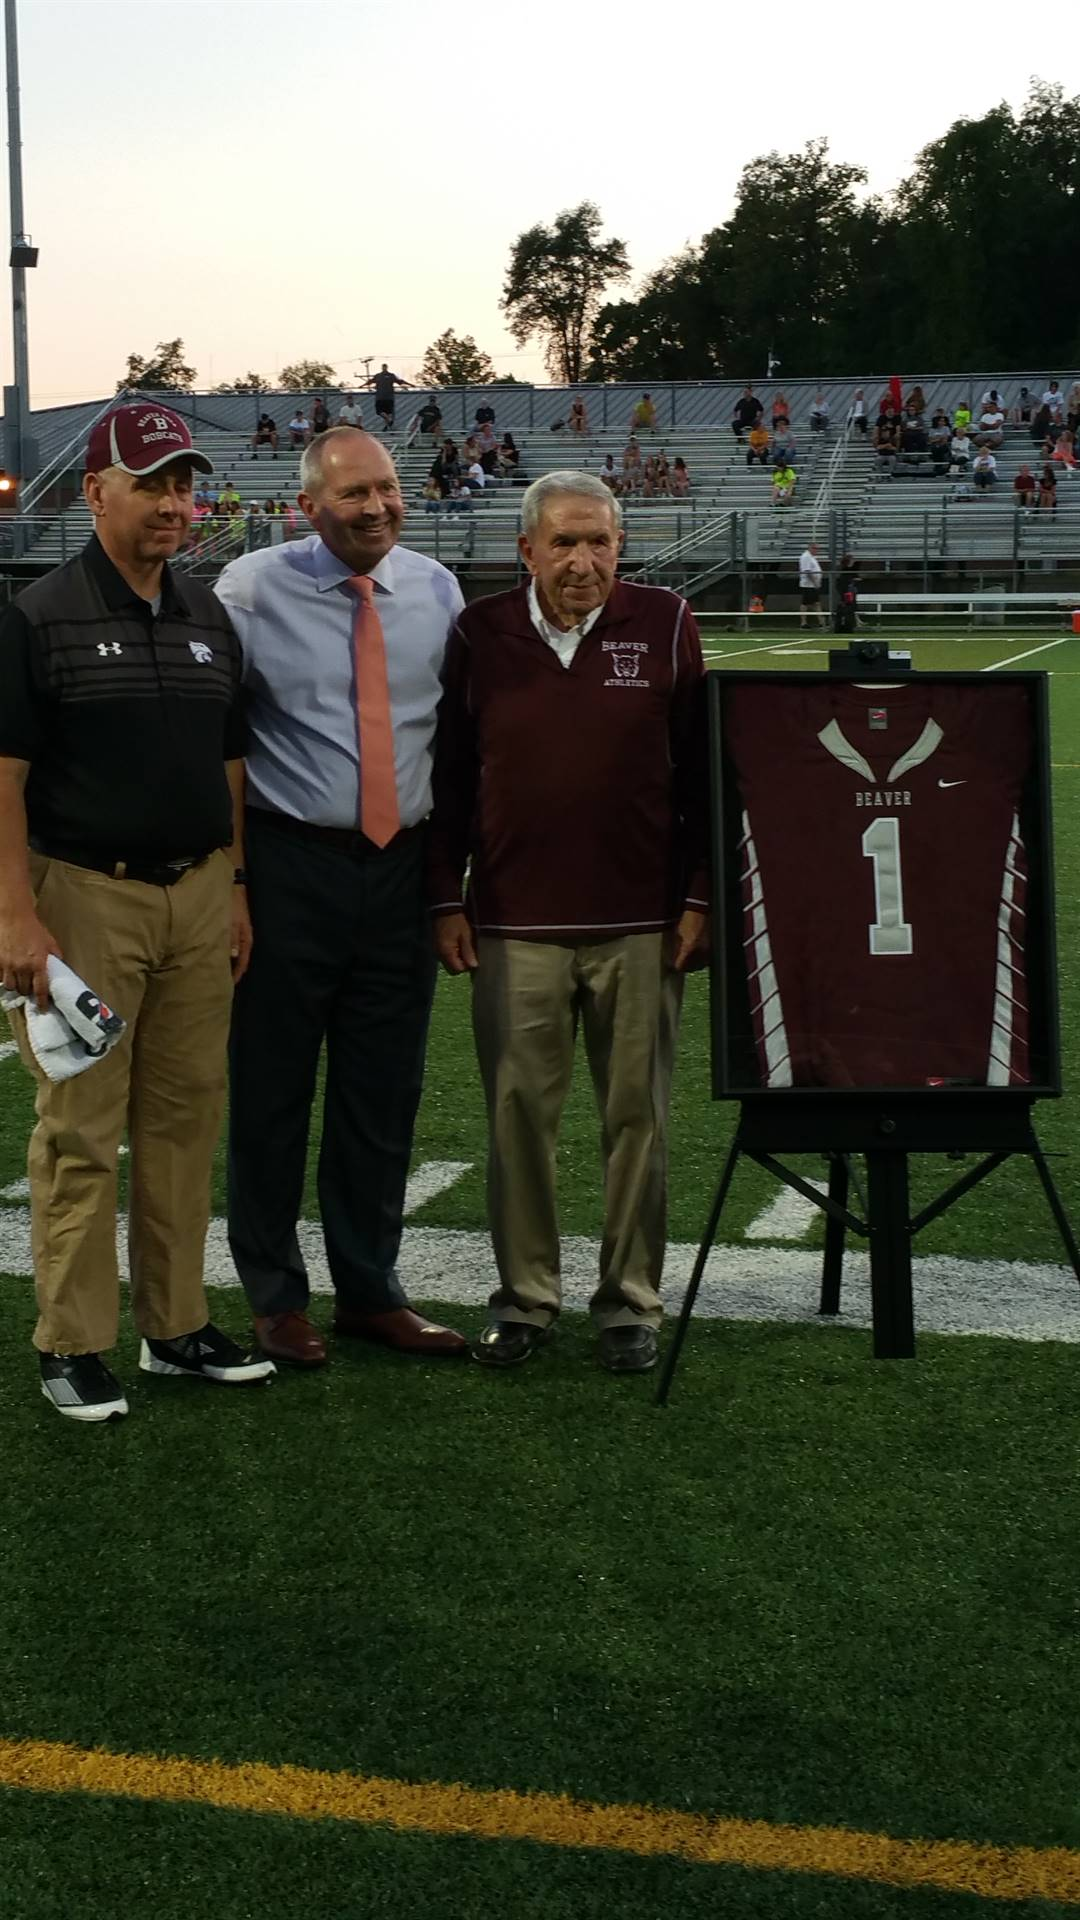 #1 Jersey 2017 - Dr. Slemenda was awarded the #1 jersey for 2017.  He established the Pat Tarquinio